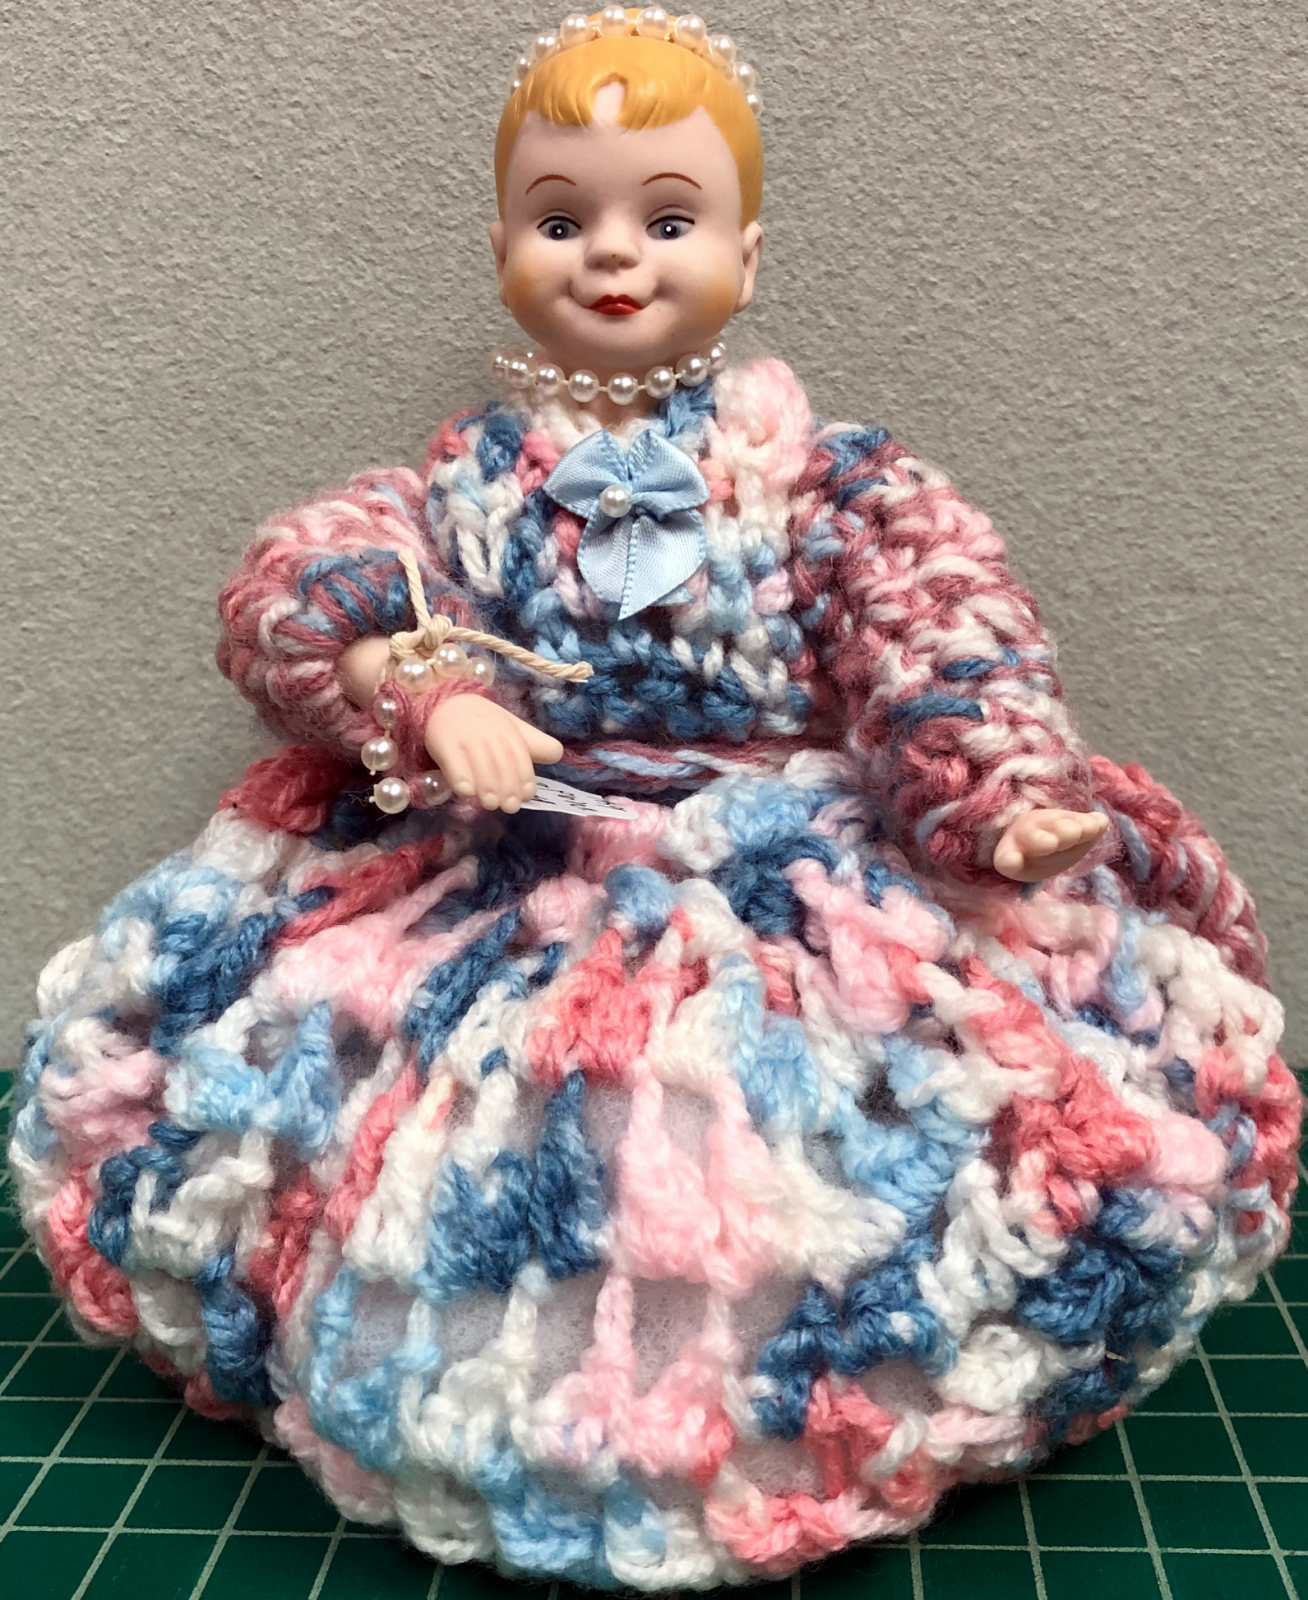 Pink & Blue Pin Cushion Doll